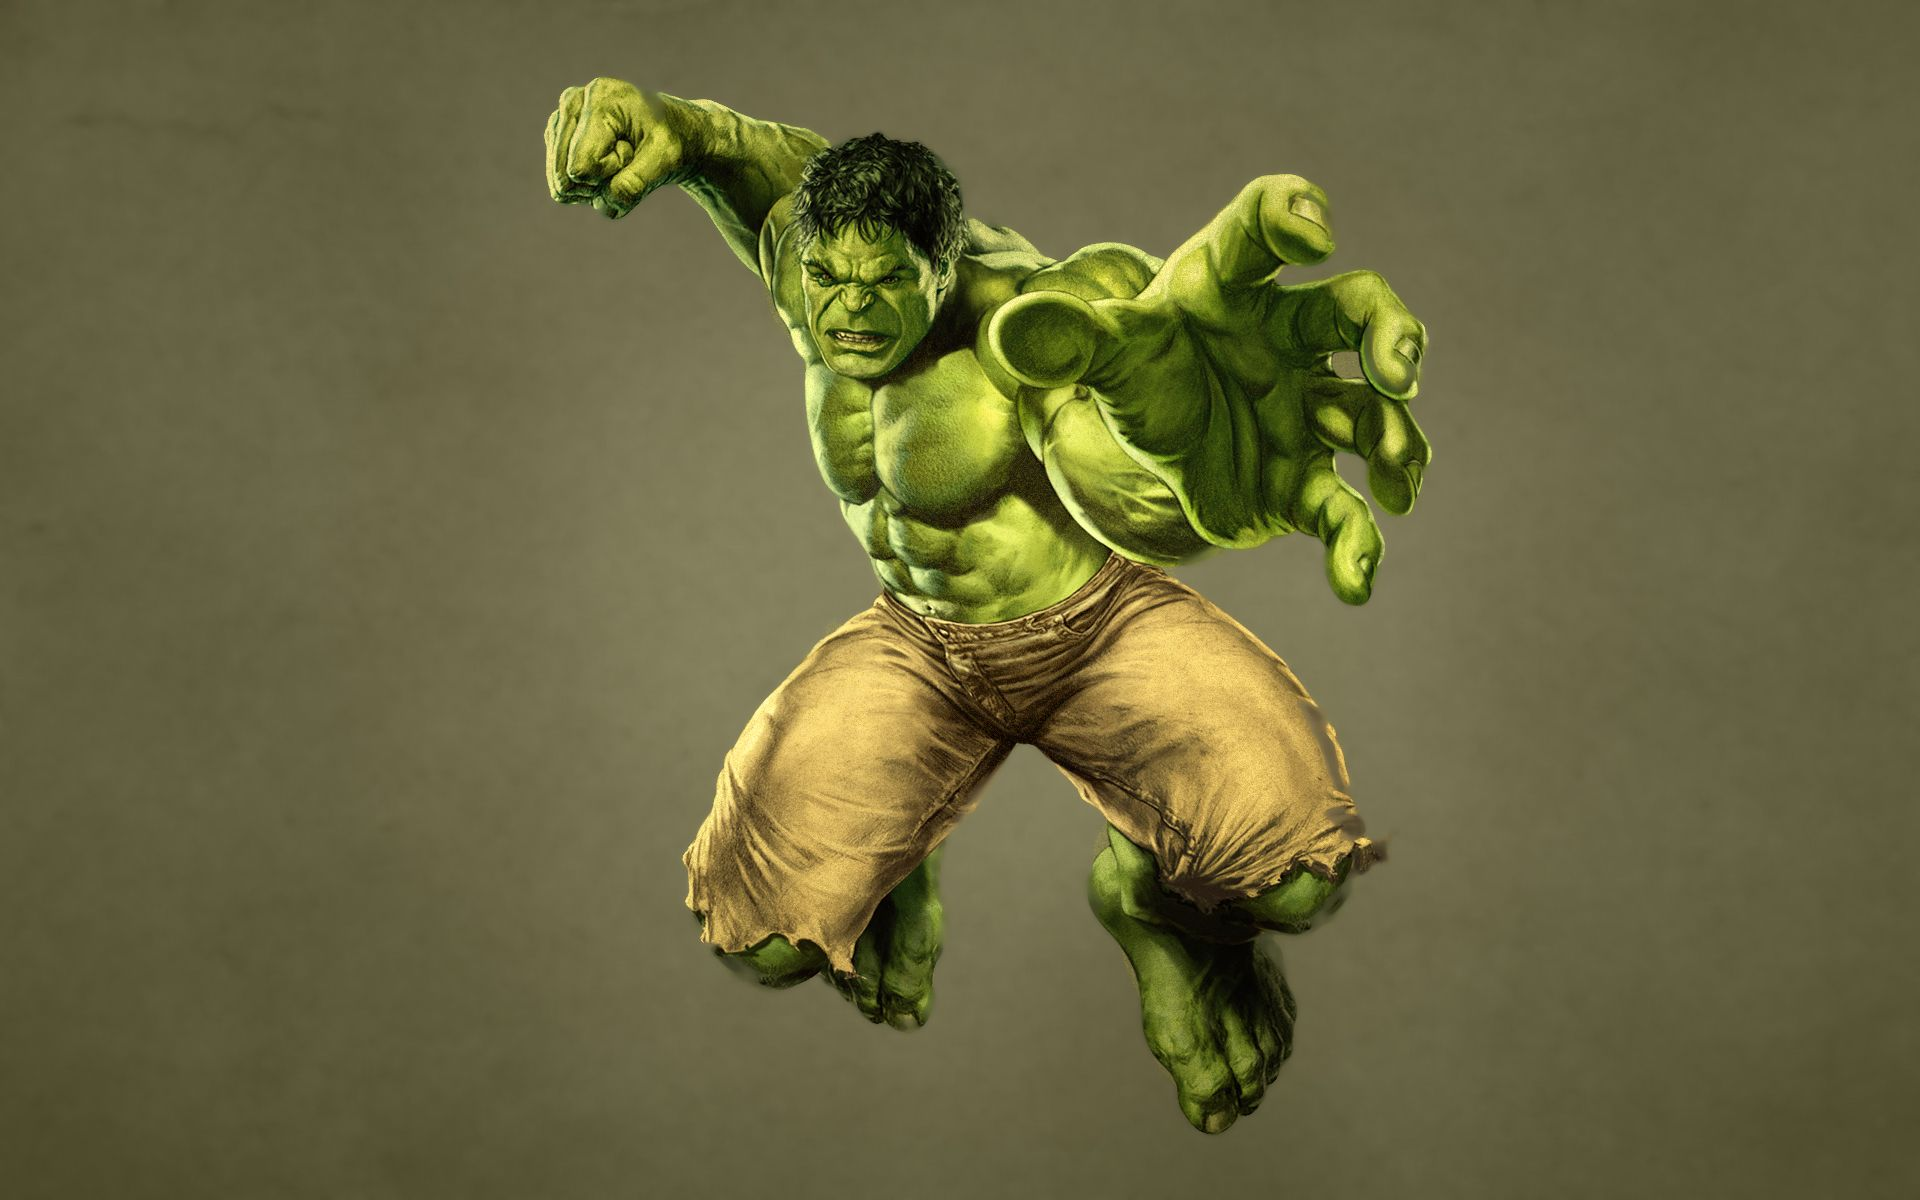 Hulk Screen 4k Free Desktop 8 Hulk Comic Hulk Avengers Incredible Hulk